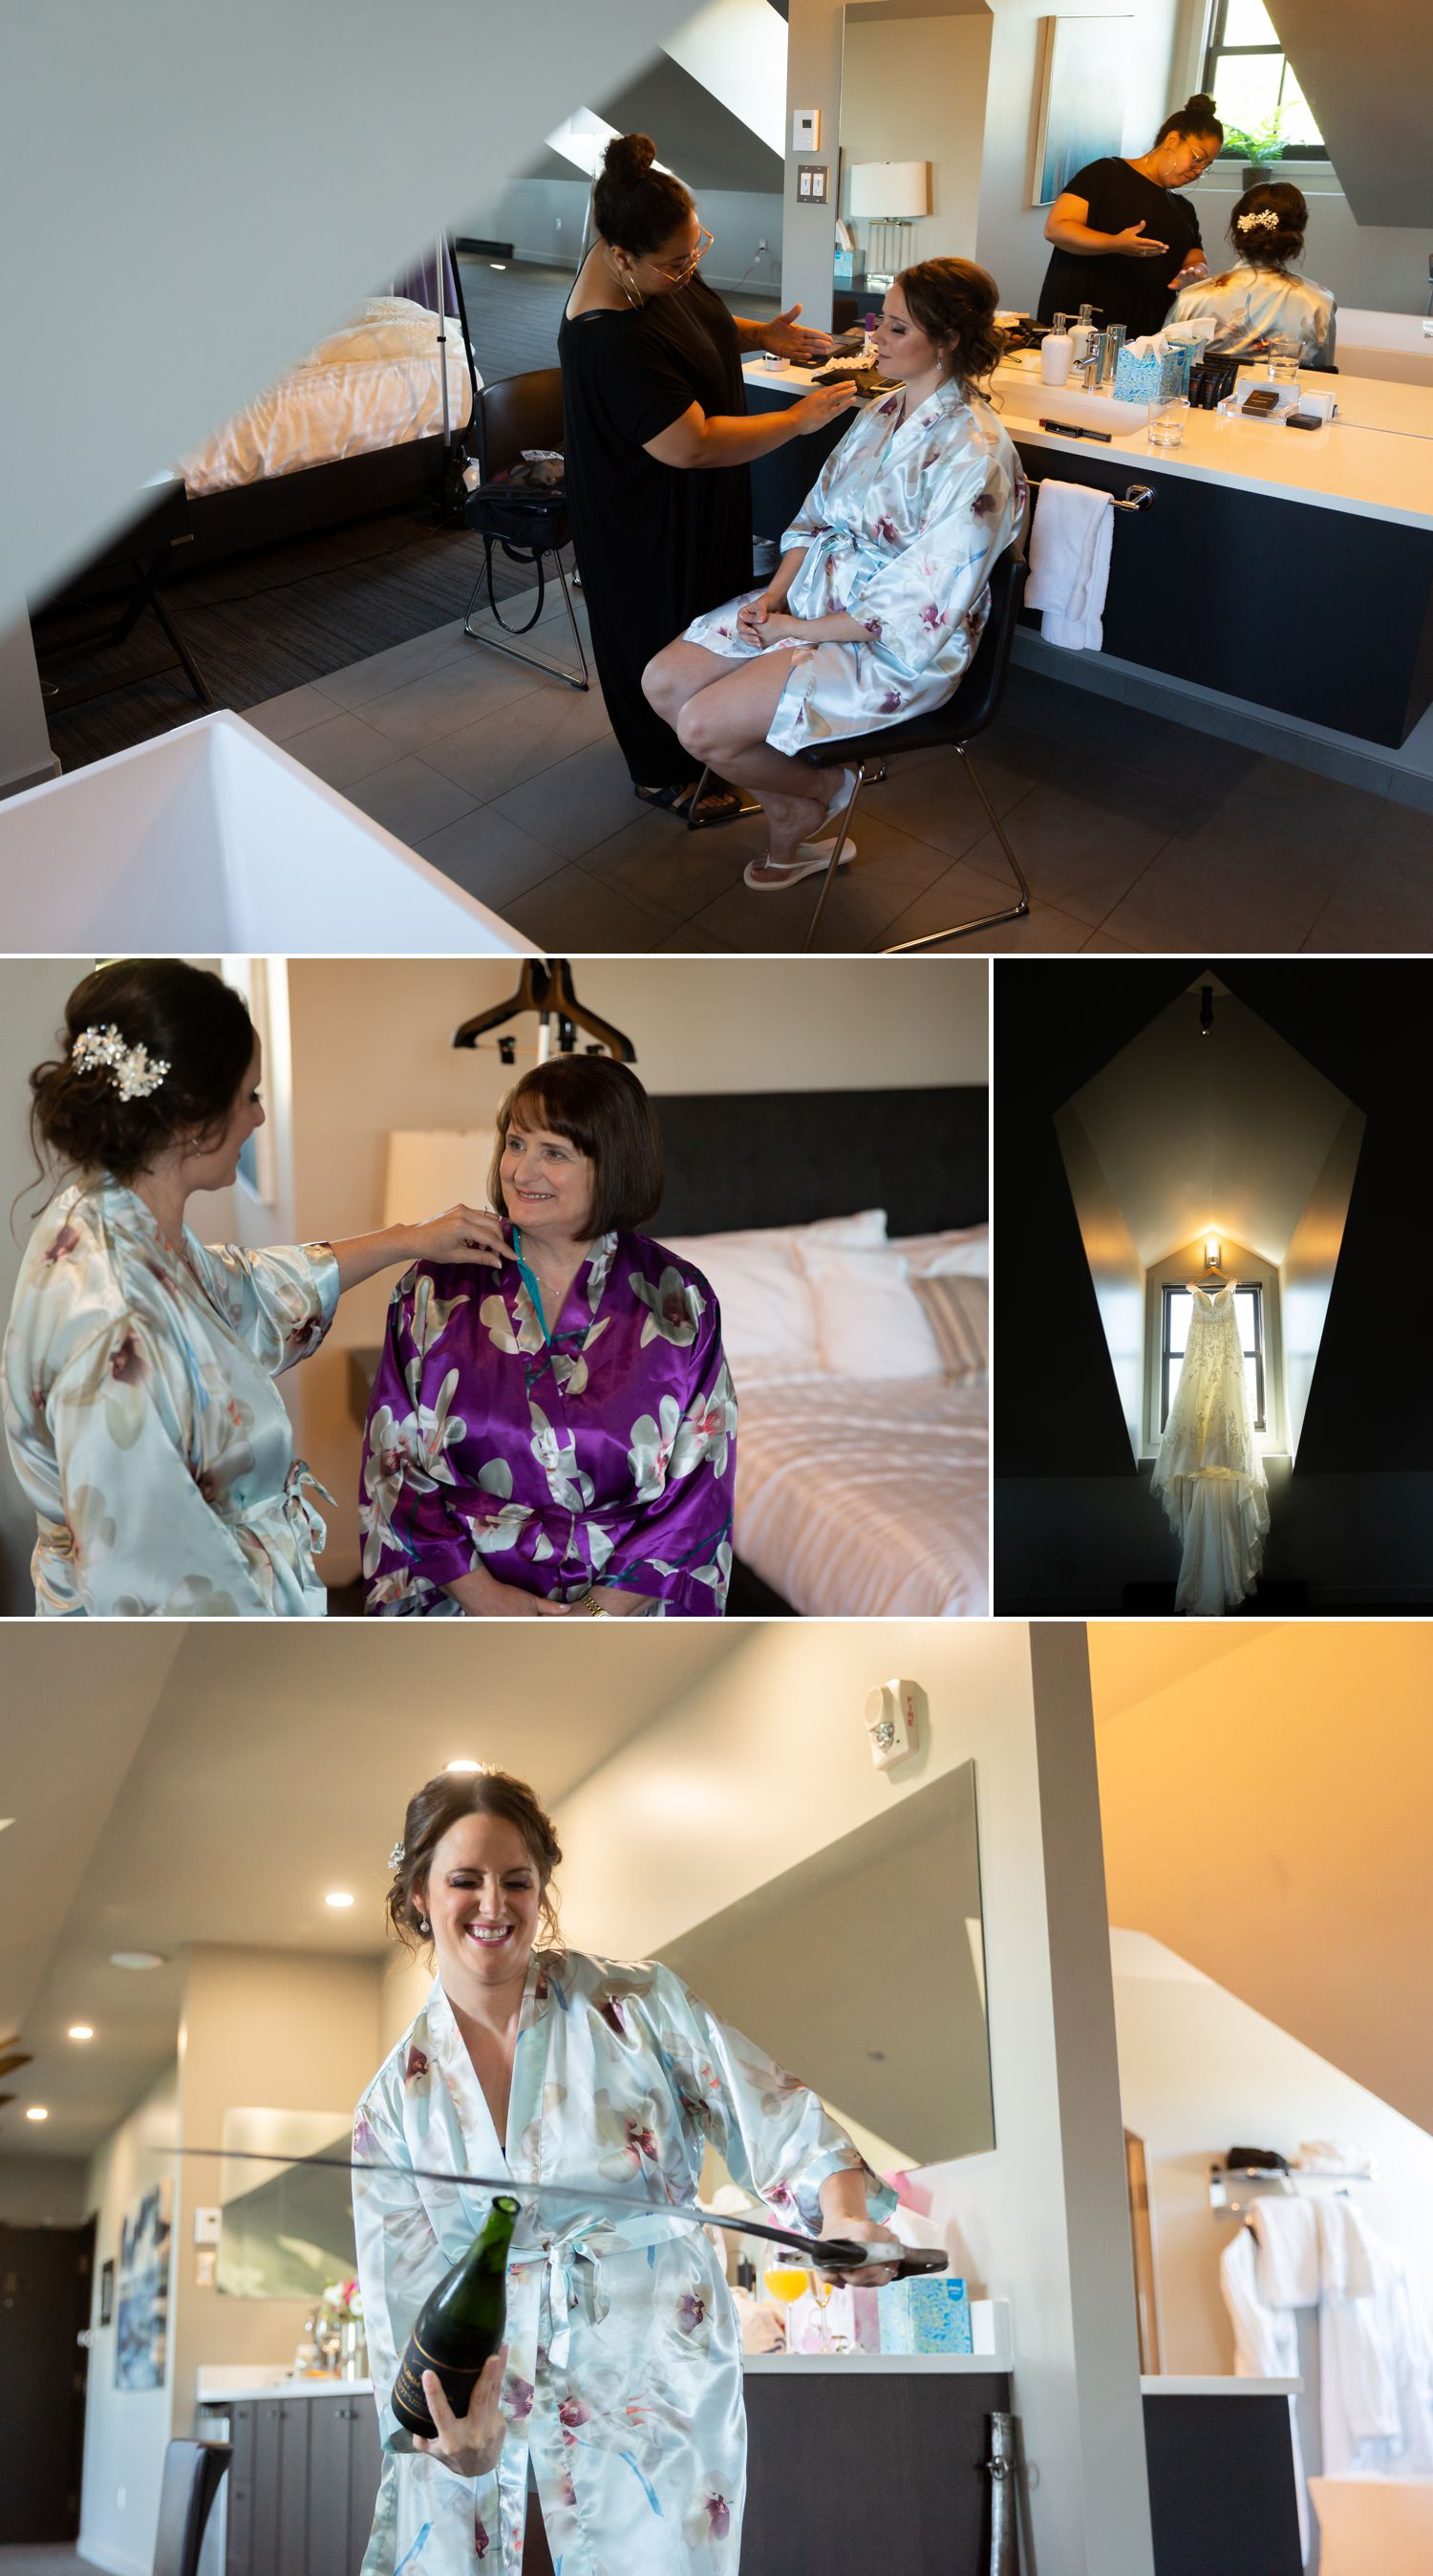 The bride with her bridesmaids and family getting ready at The British Hotel in Gatineau, Quebec